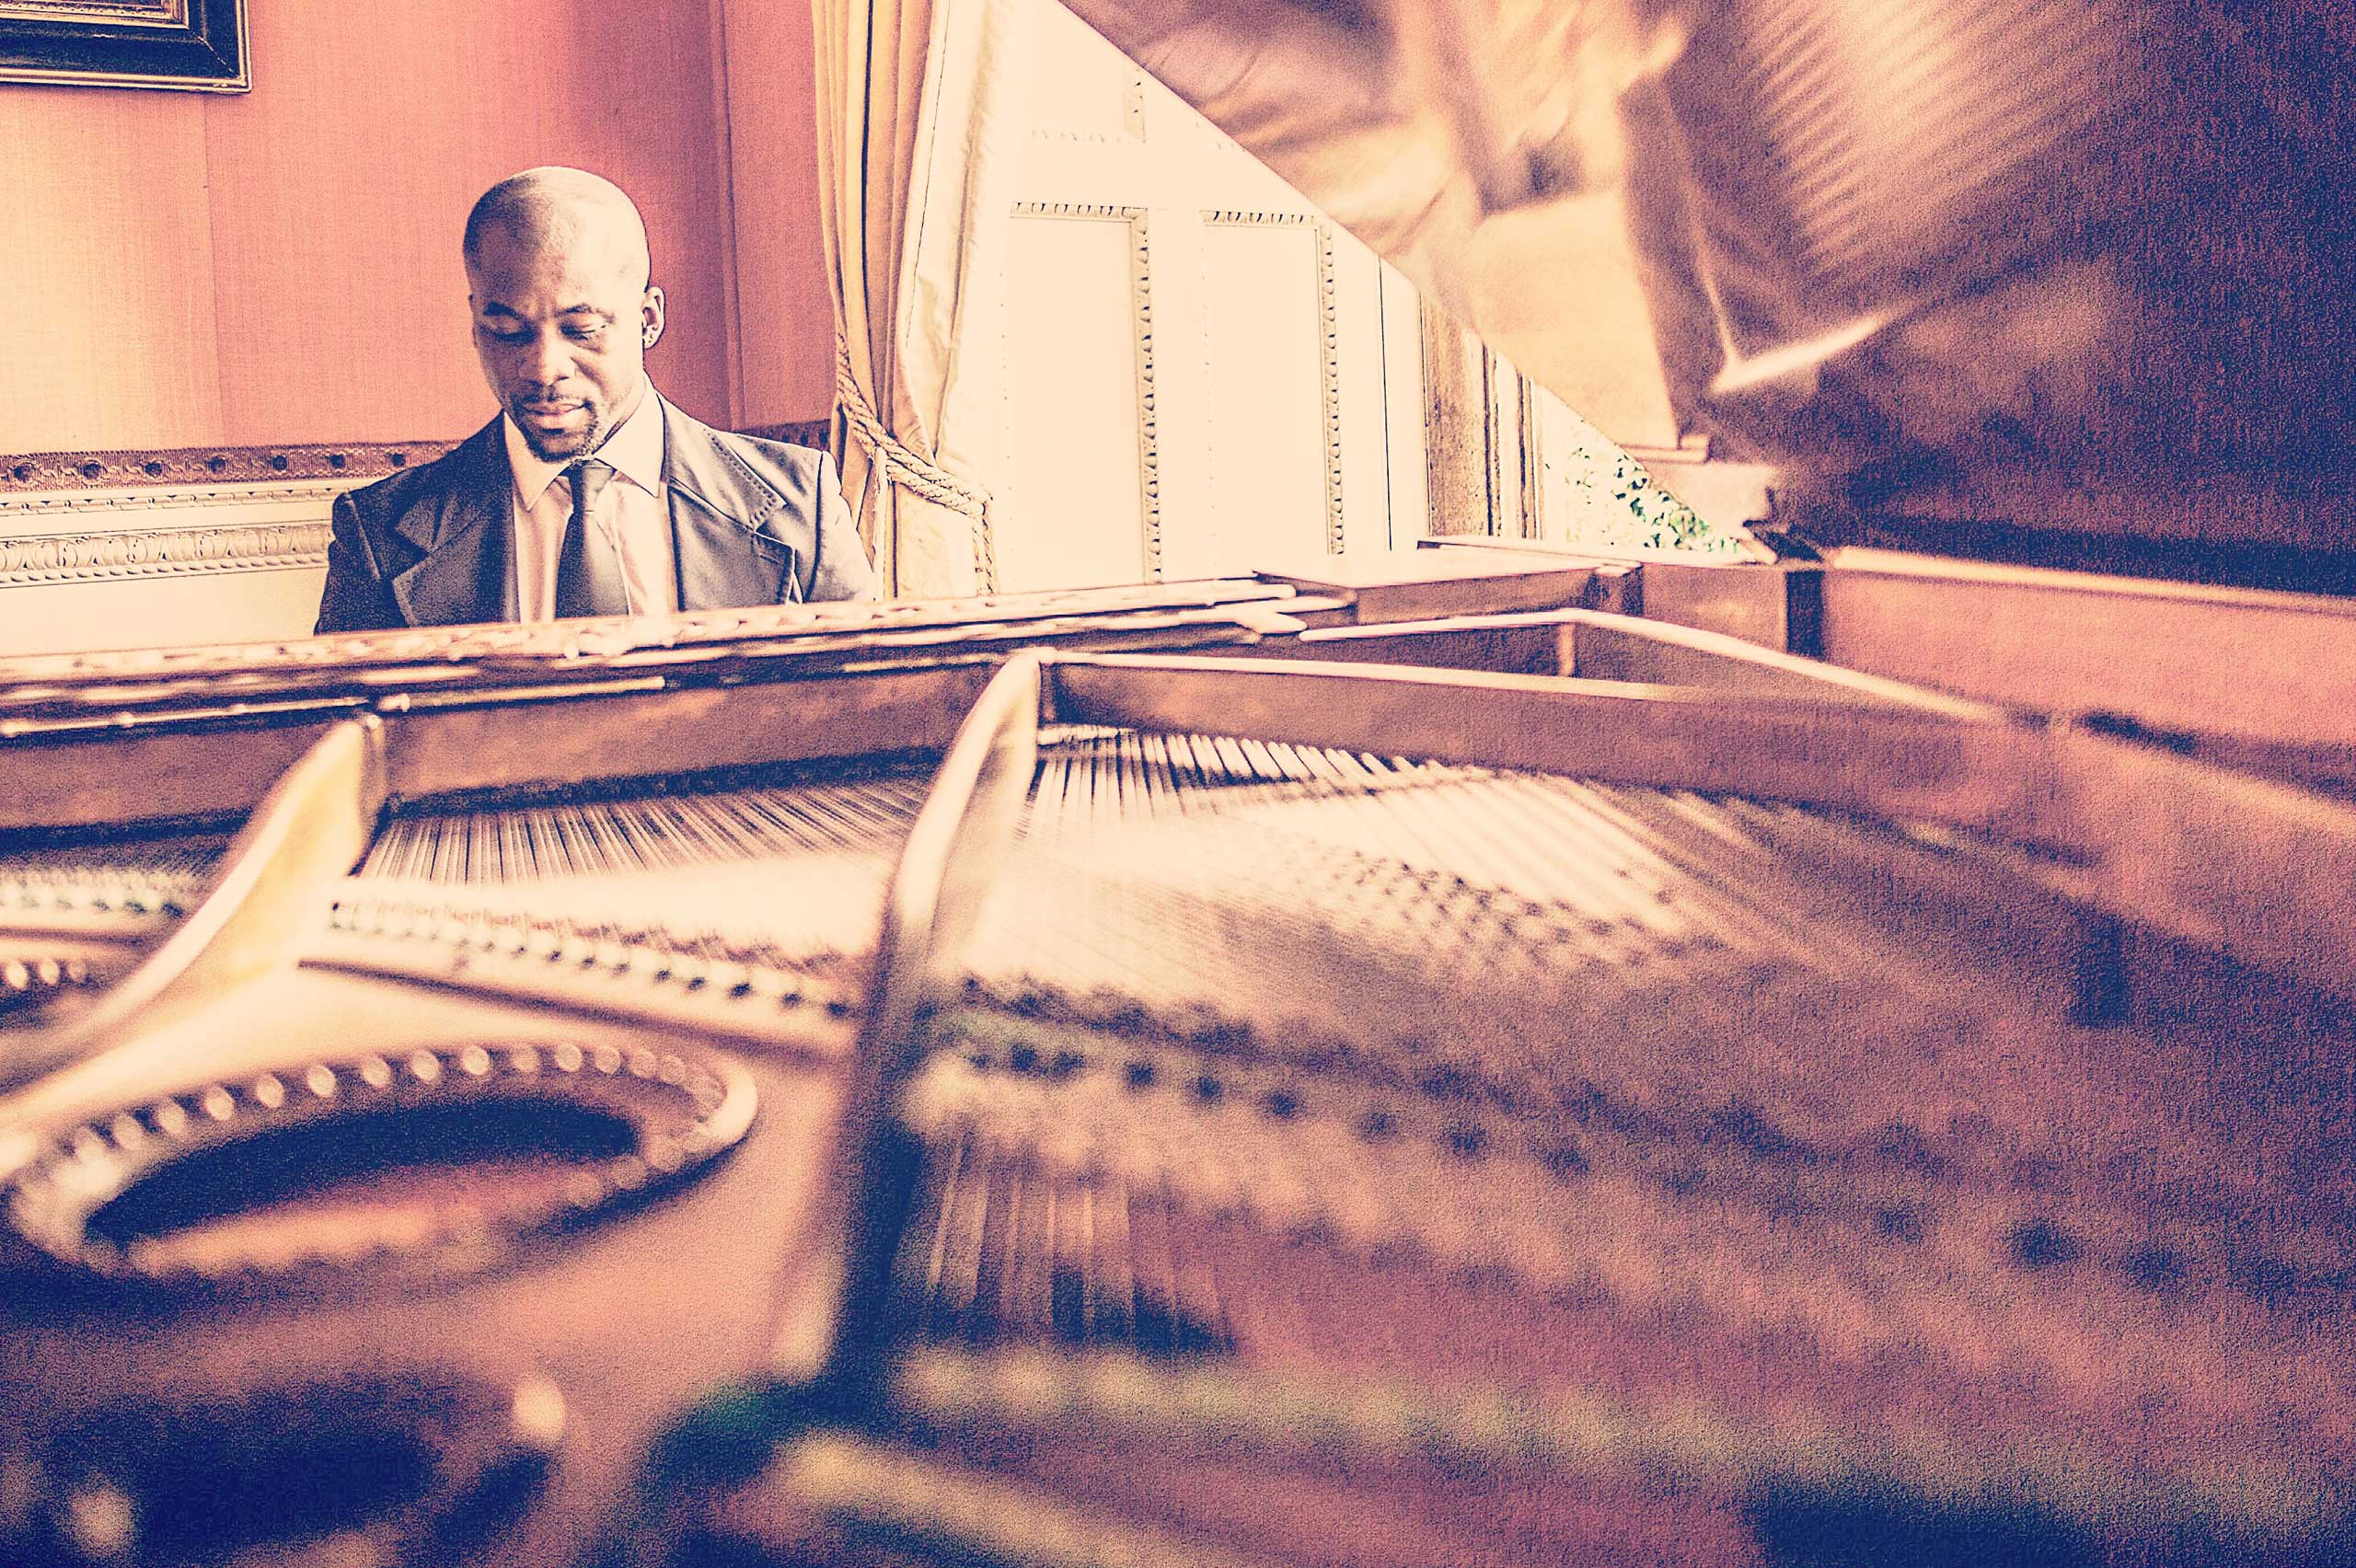 wedding pianist, wedding entertainment